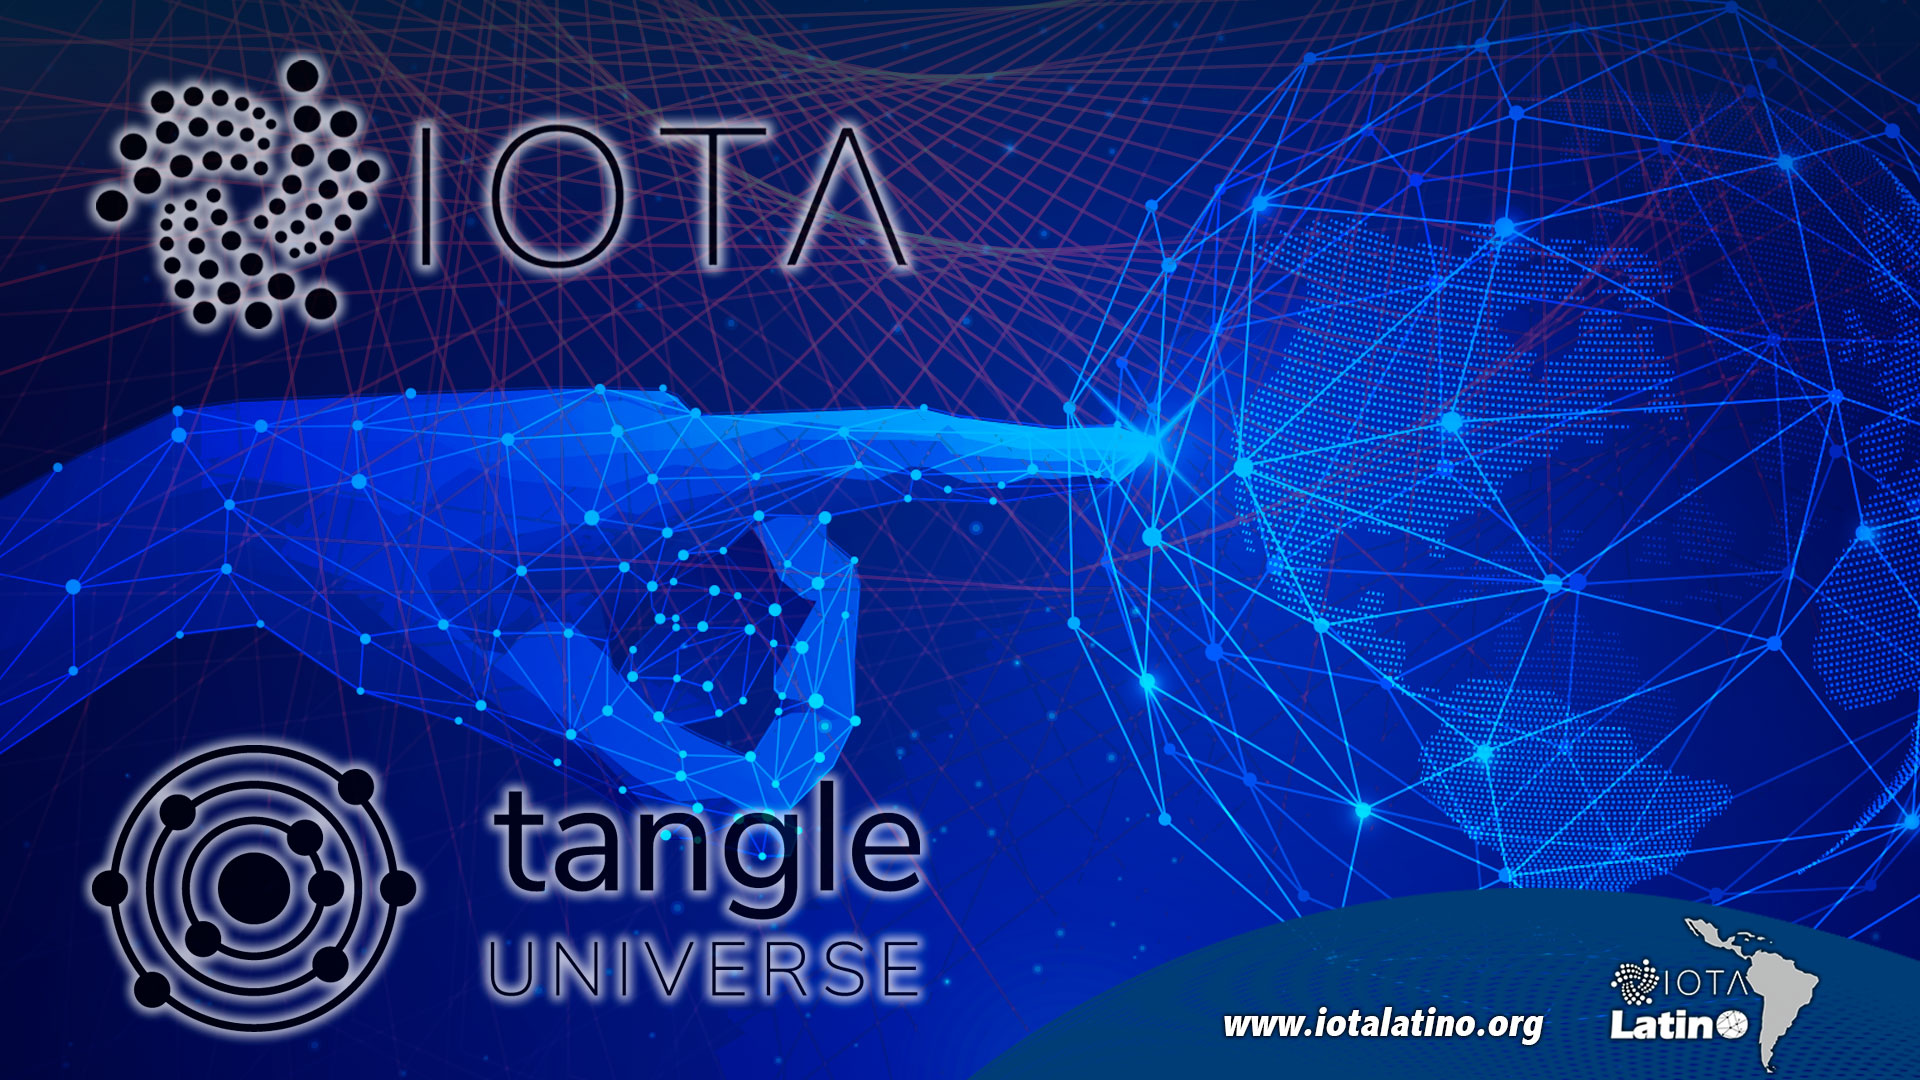 Tangle Universe BETA - Iota Latino